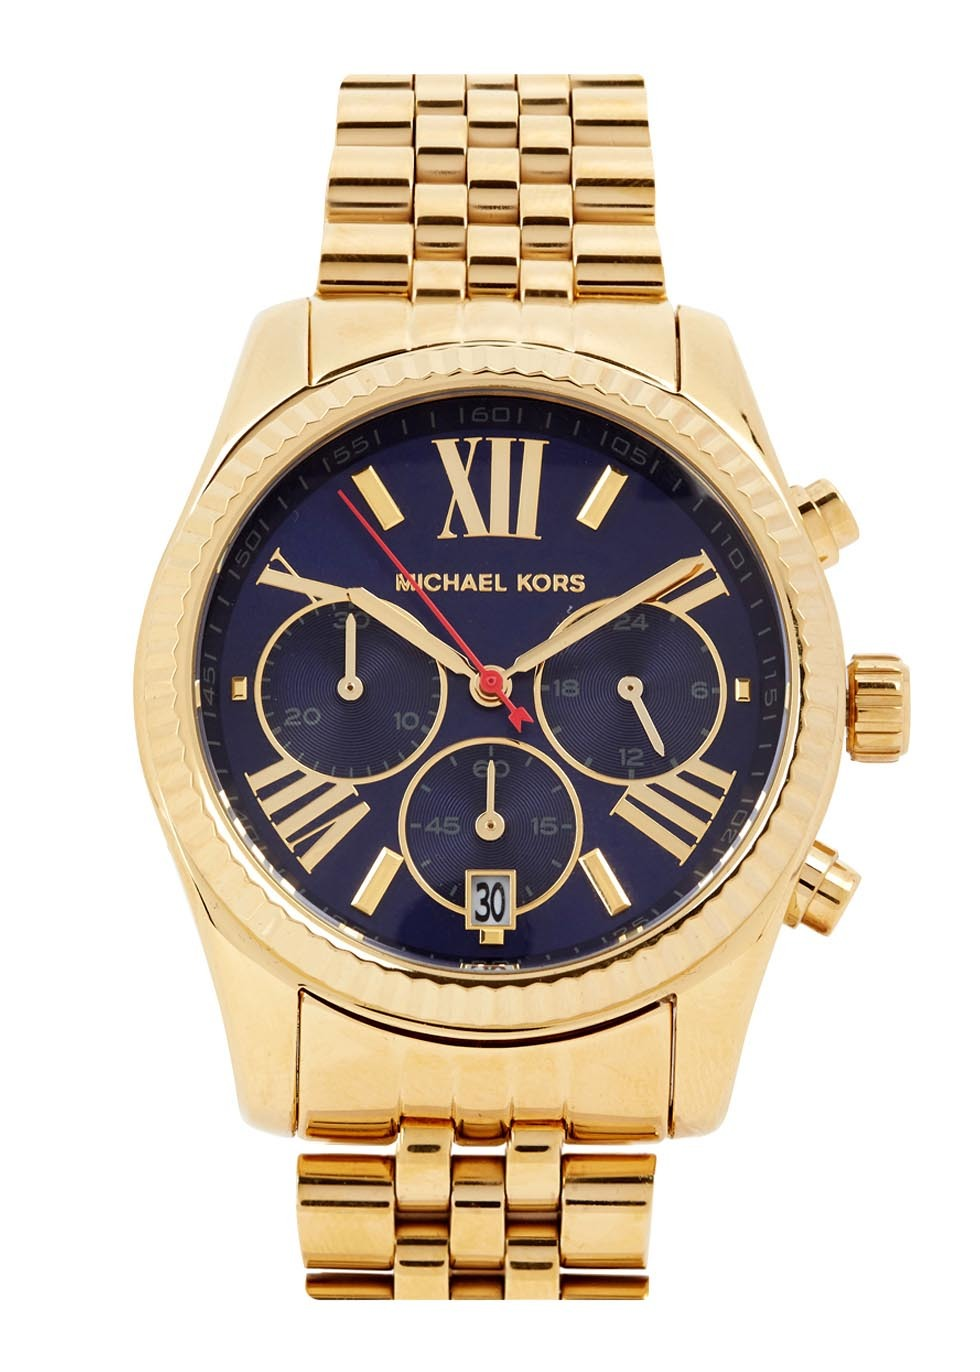 Lexington Gold Tone Chronograph Watch - secondary colour: navy; predominant colour: gold; occasions: casual, work, creative work; style: boyfriend; size: large/oversized; material: chain/metal; finish: metallic; pattern: plain; season: s/s 2016